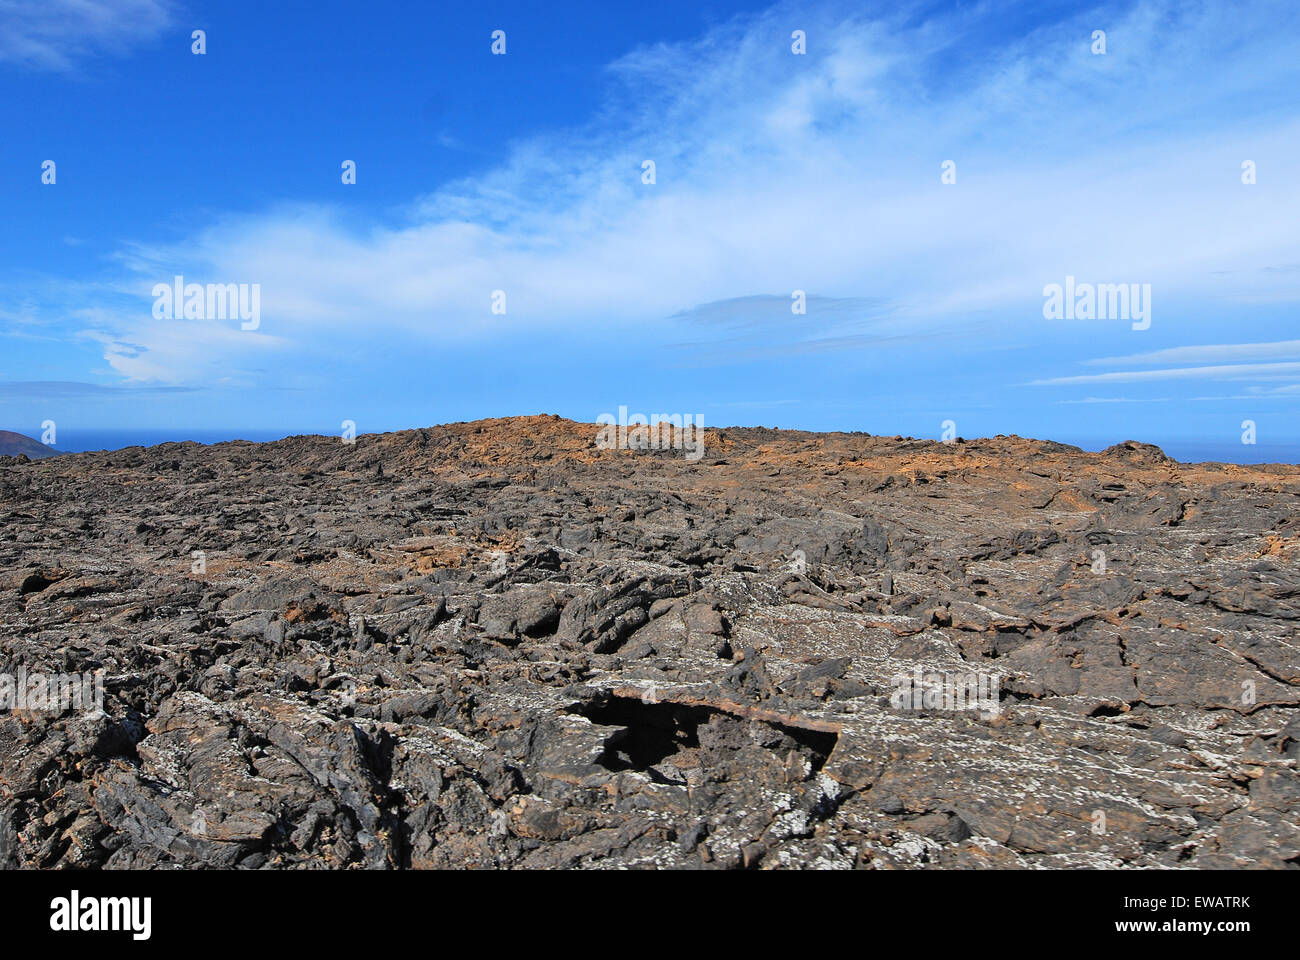 Lanzarote, Canary Islands, Spain. A lava field with mountains in the horizon, in Timanfaya Natural Park. - Stock Image